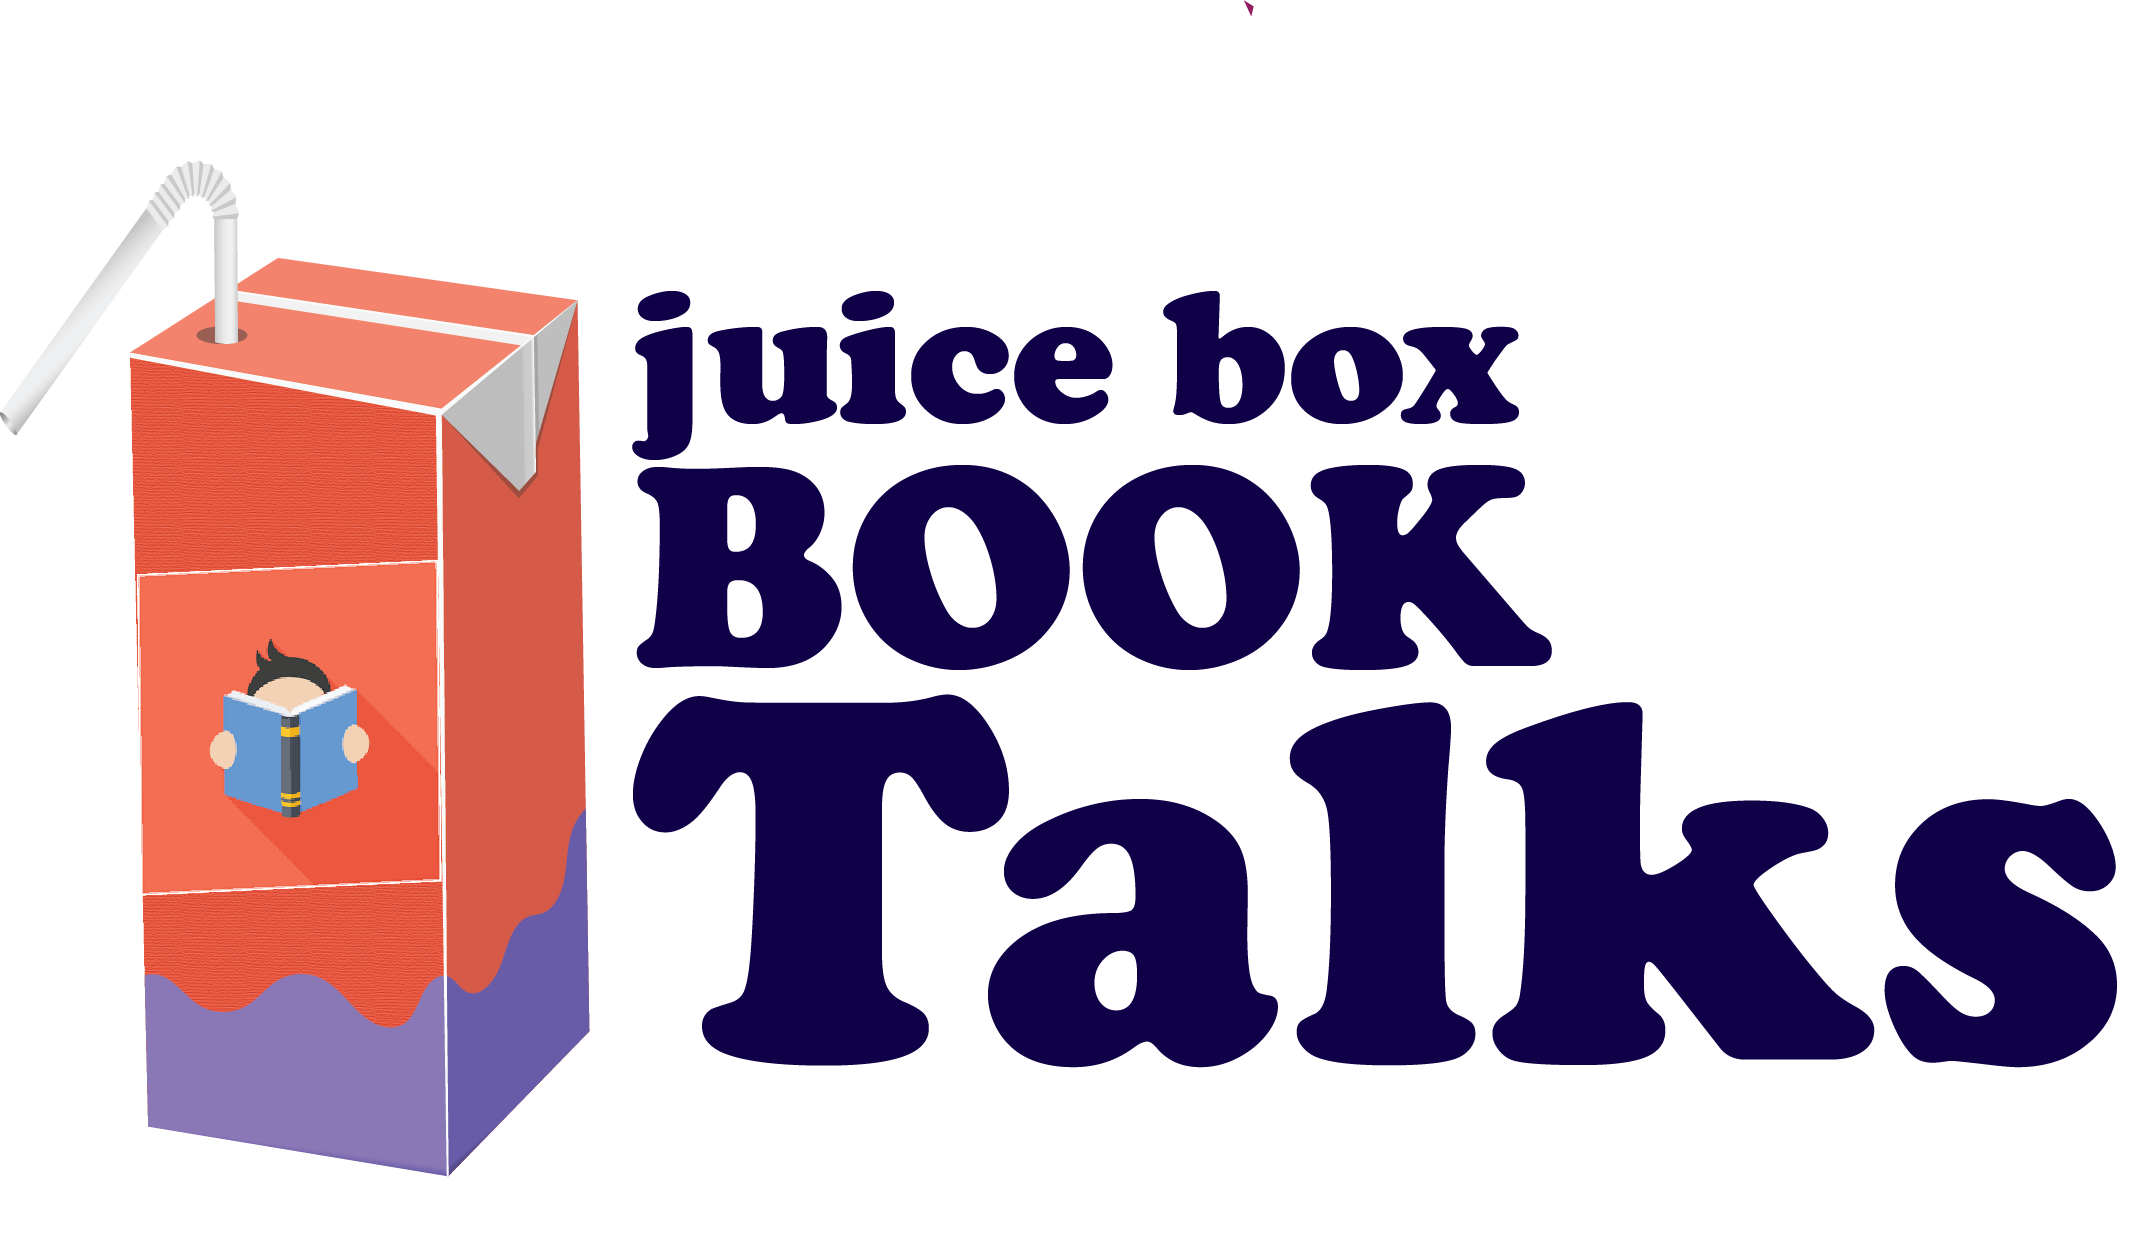 Cartoon image of juice box with a logo that looks like a child reading